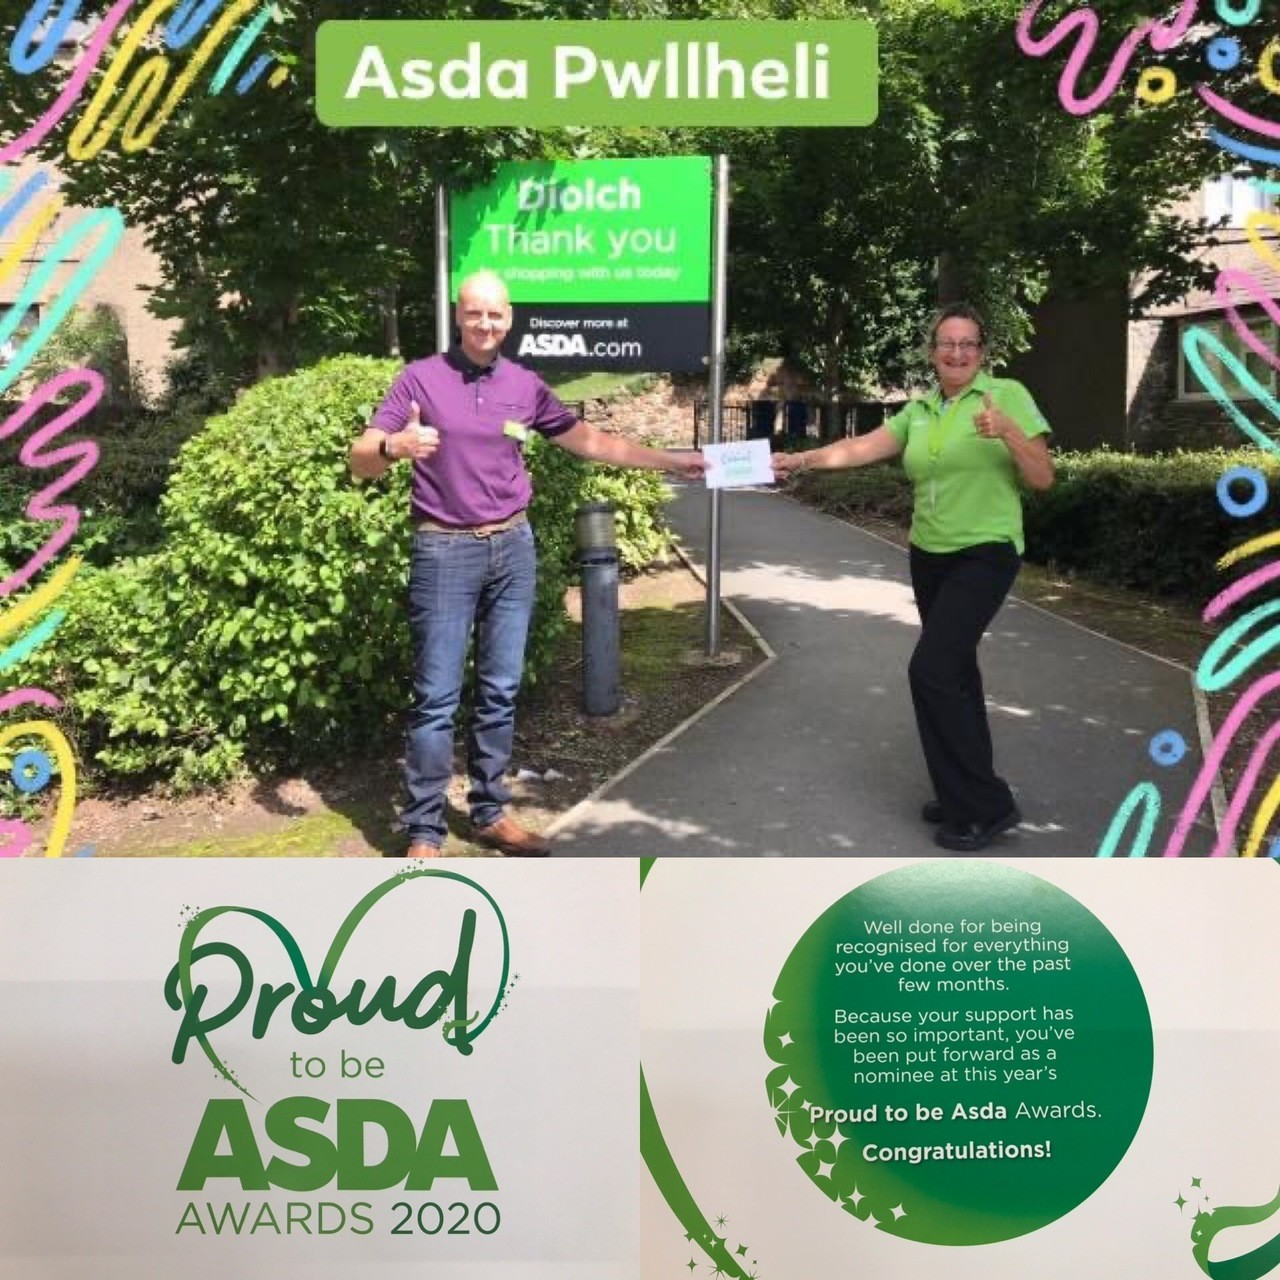 Proud to be Asda Awards | Asda Pwllheli